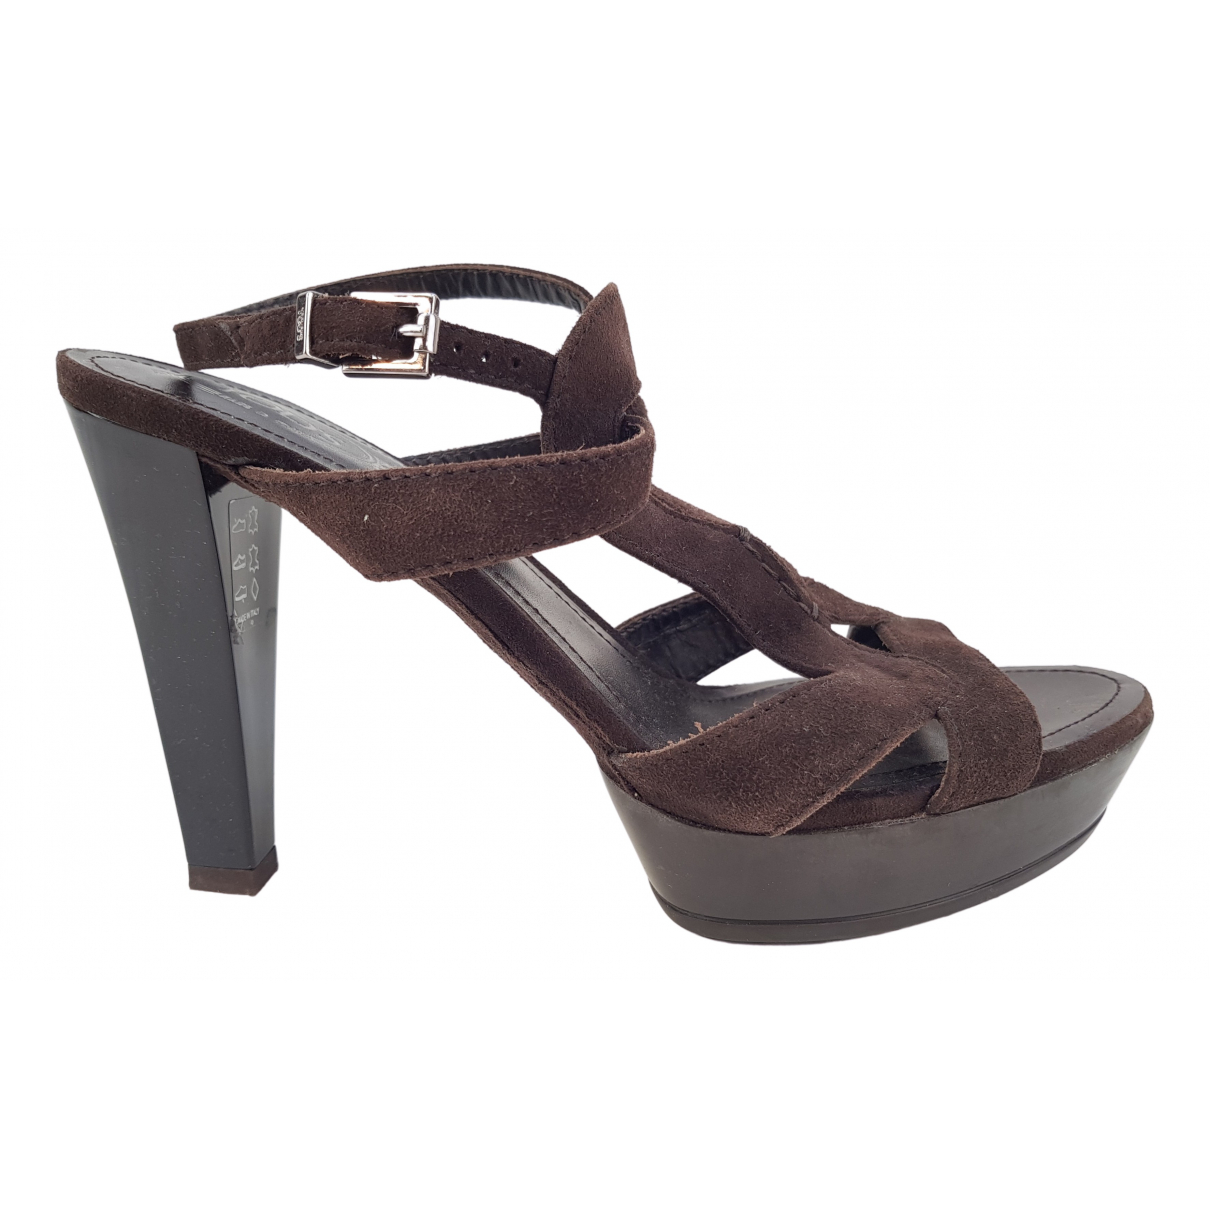 Tod's N Brown Suede Sandals for Women 37 EU